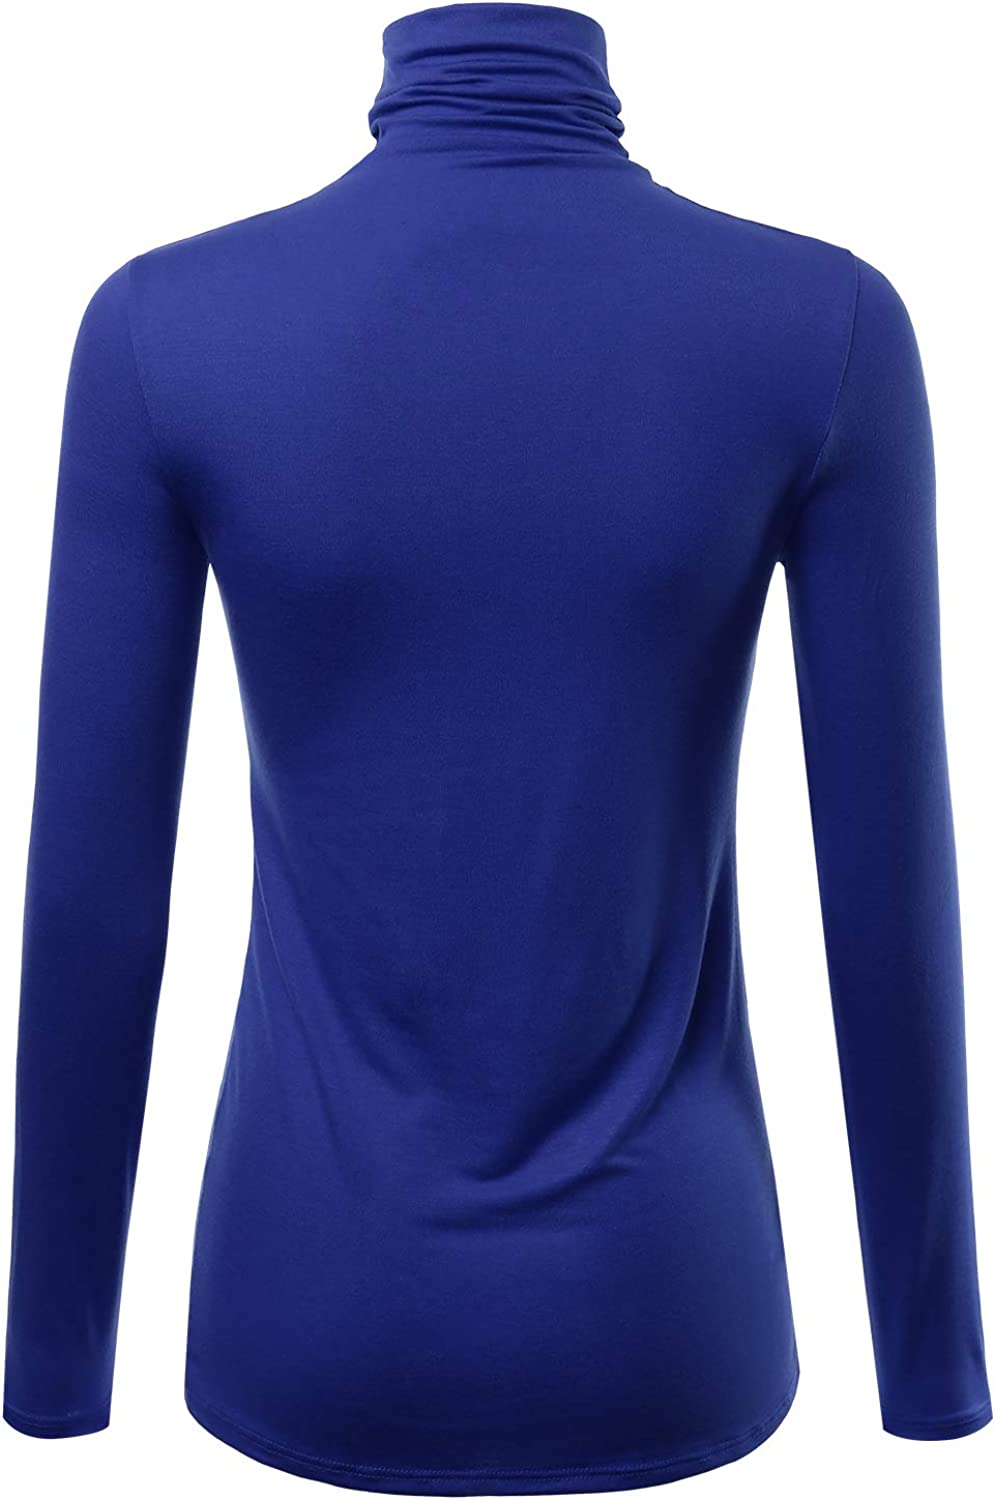 FASHIONOLIC Womens Premium Long Sleeve Turtleneck Lightweight Pullover Top Sweater S-3X, Made in USA